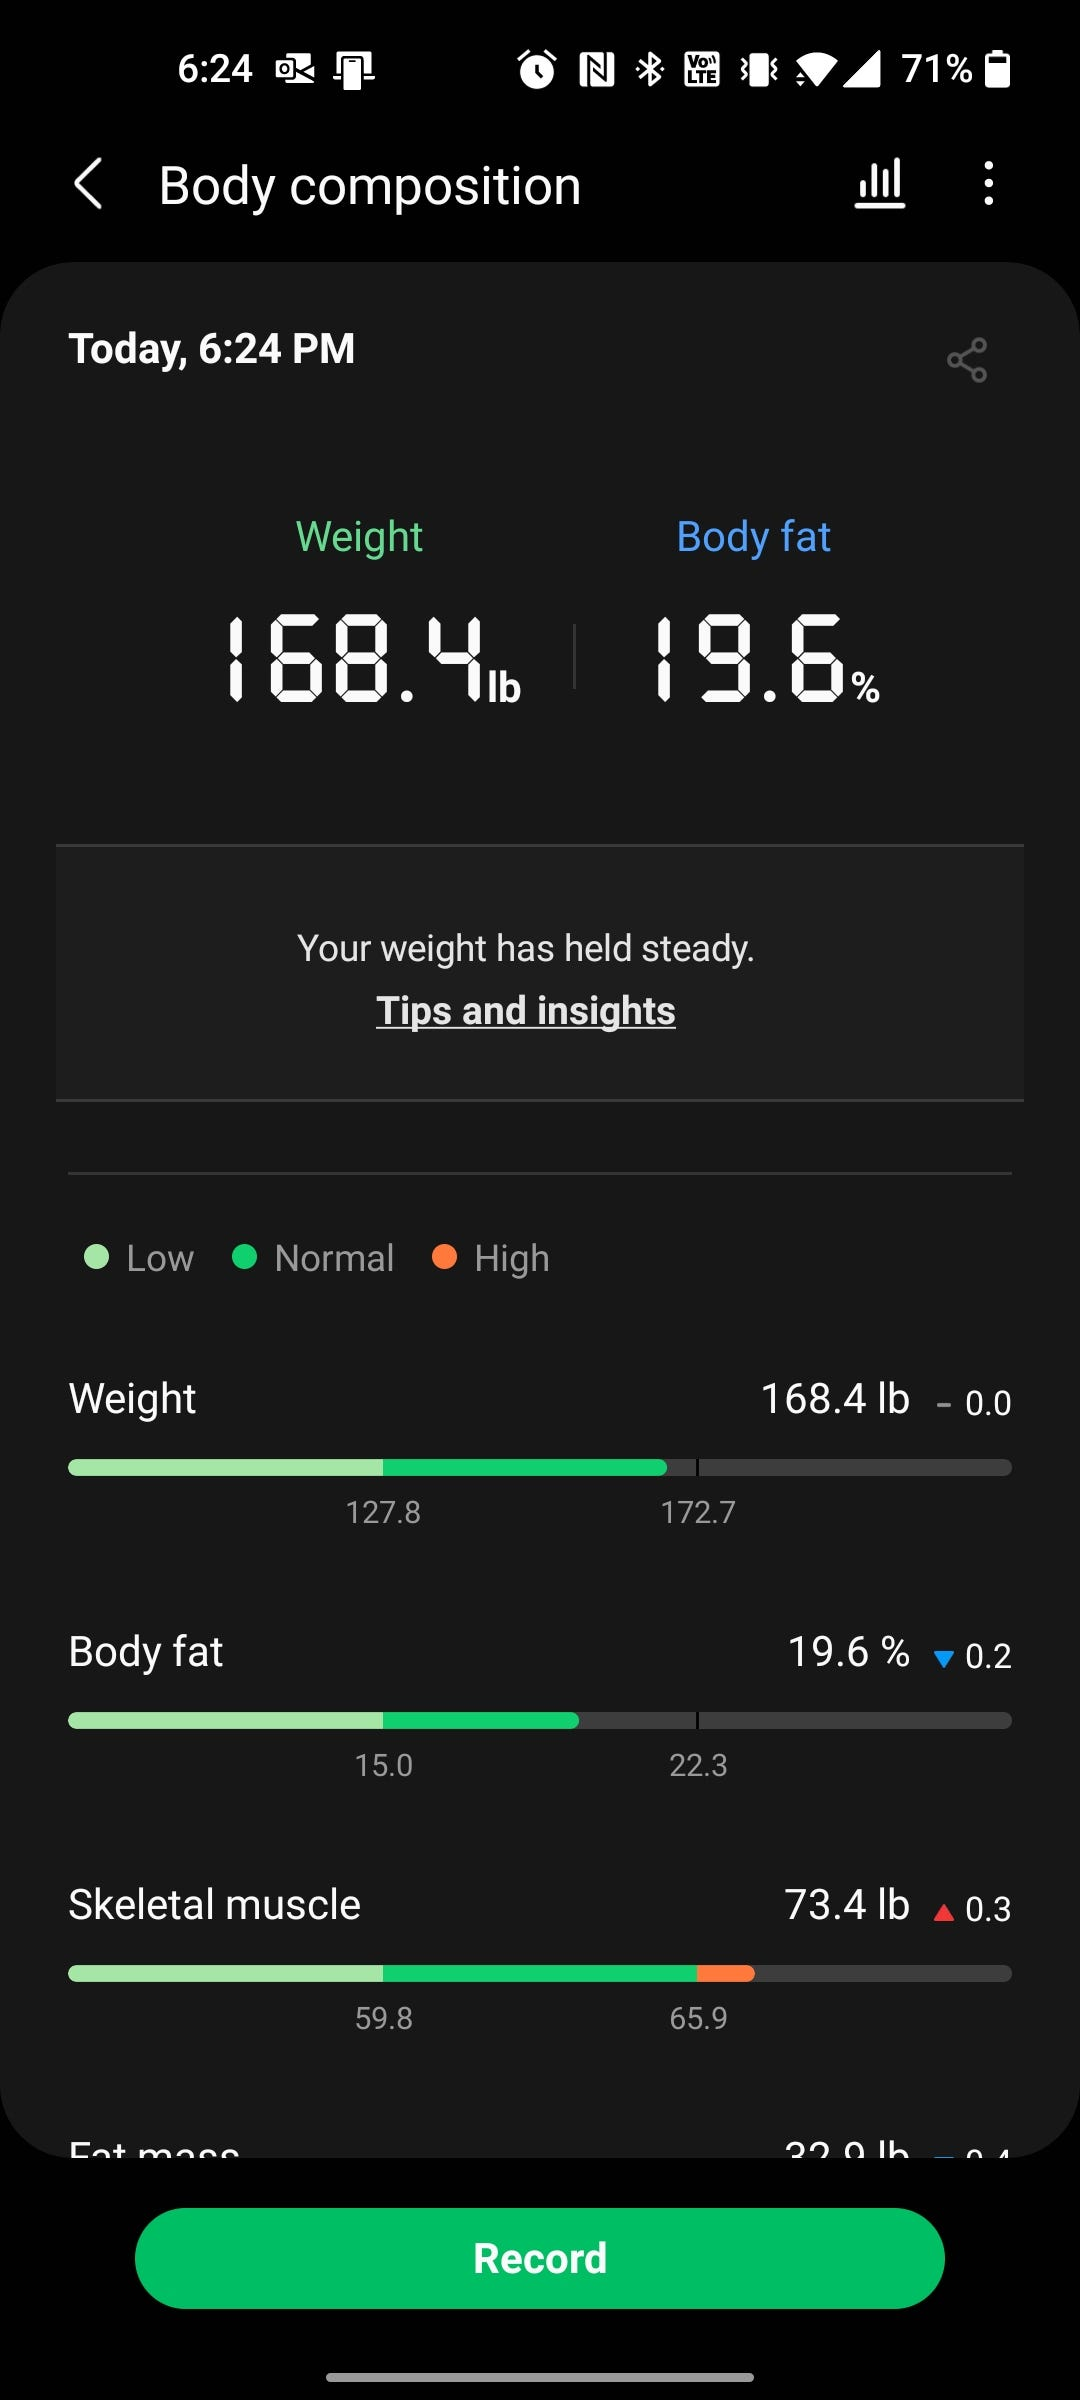 The Samsung Health app showing body composition